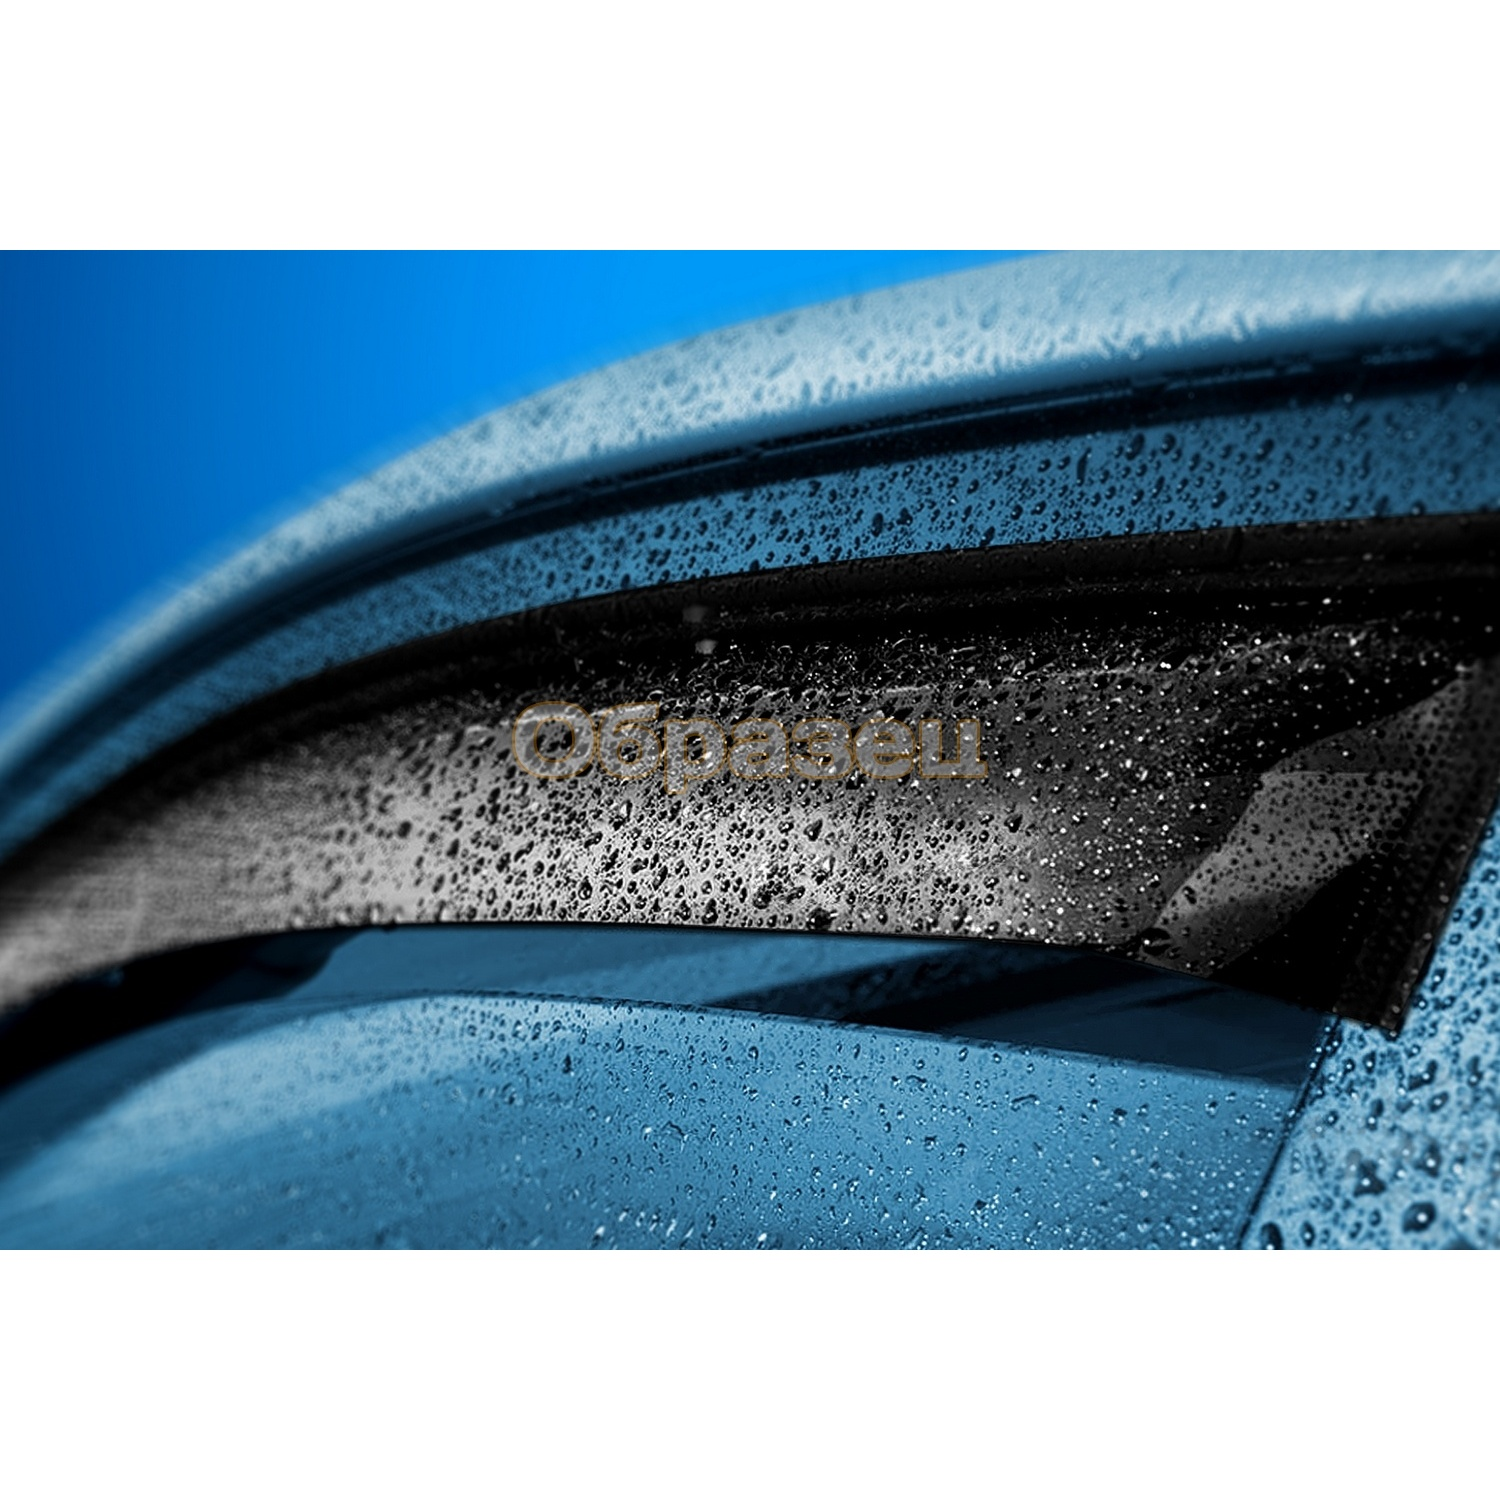 Window deflector 2 PCs Mercedes Axor 2001  patch  3 M adhesive tape  дымчаты|Awnings & Shelters| |  - title=